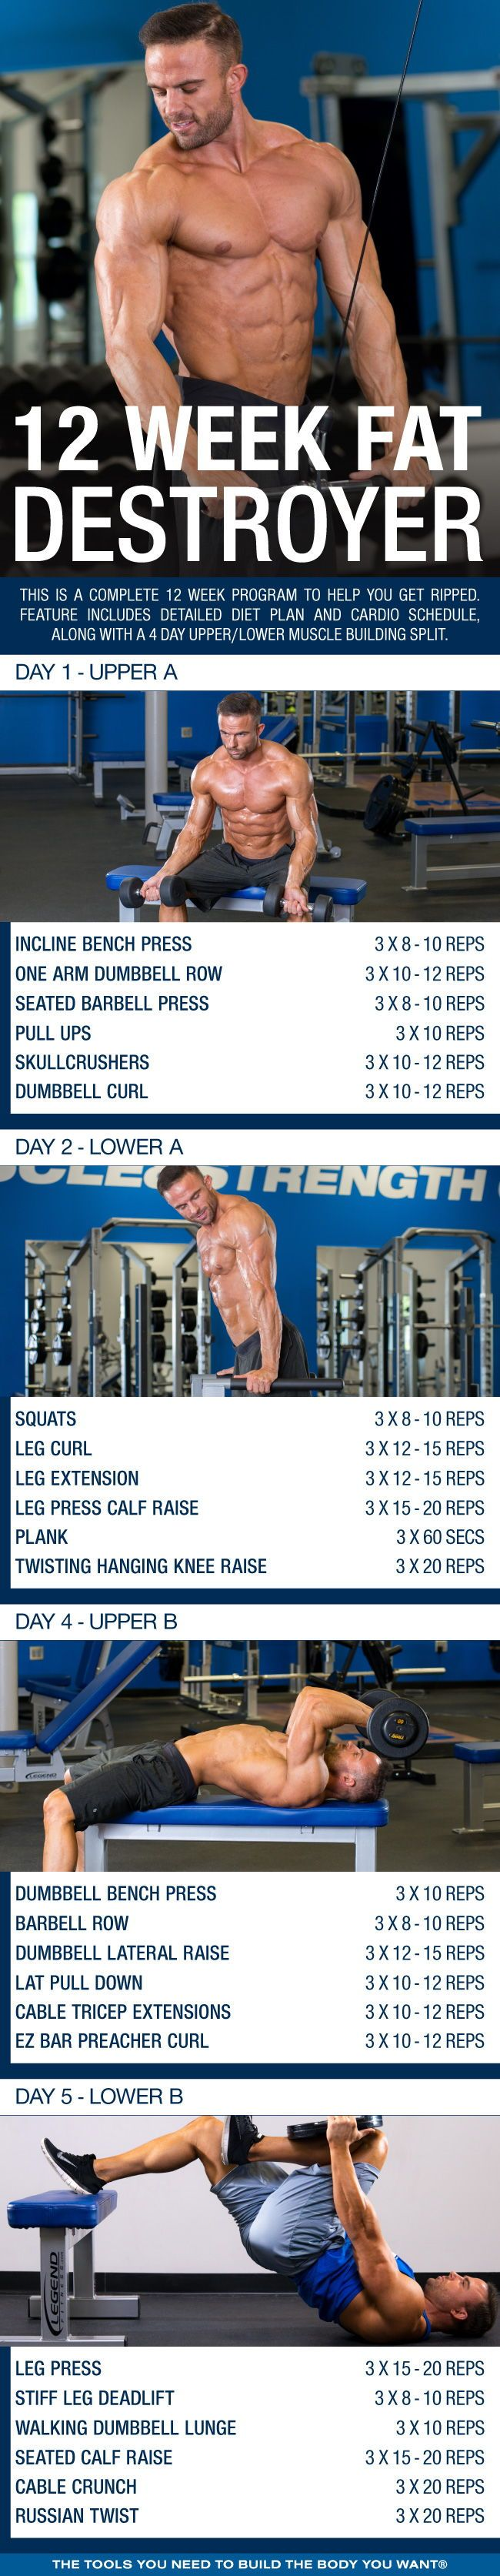 (Click through to download PDF!) This is a complete 12 week program to help you get ripped. Feature includes detailed diet plan and cardio schedule, along with a 4 day upper/lower muscle building split. #workout #gym #fitness #bodybuilding